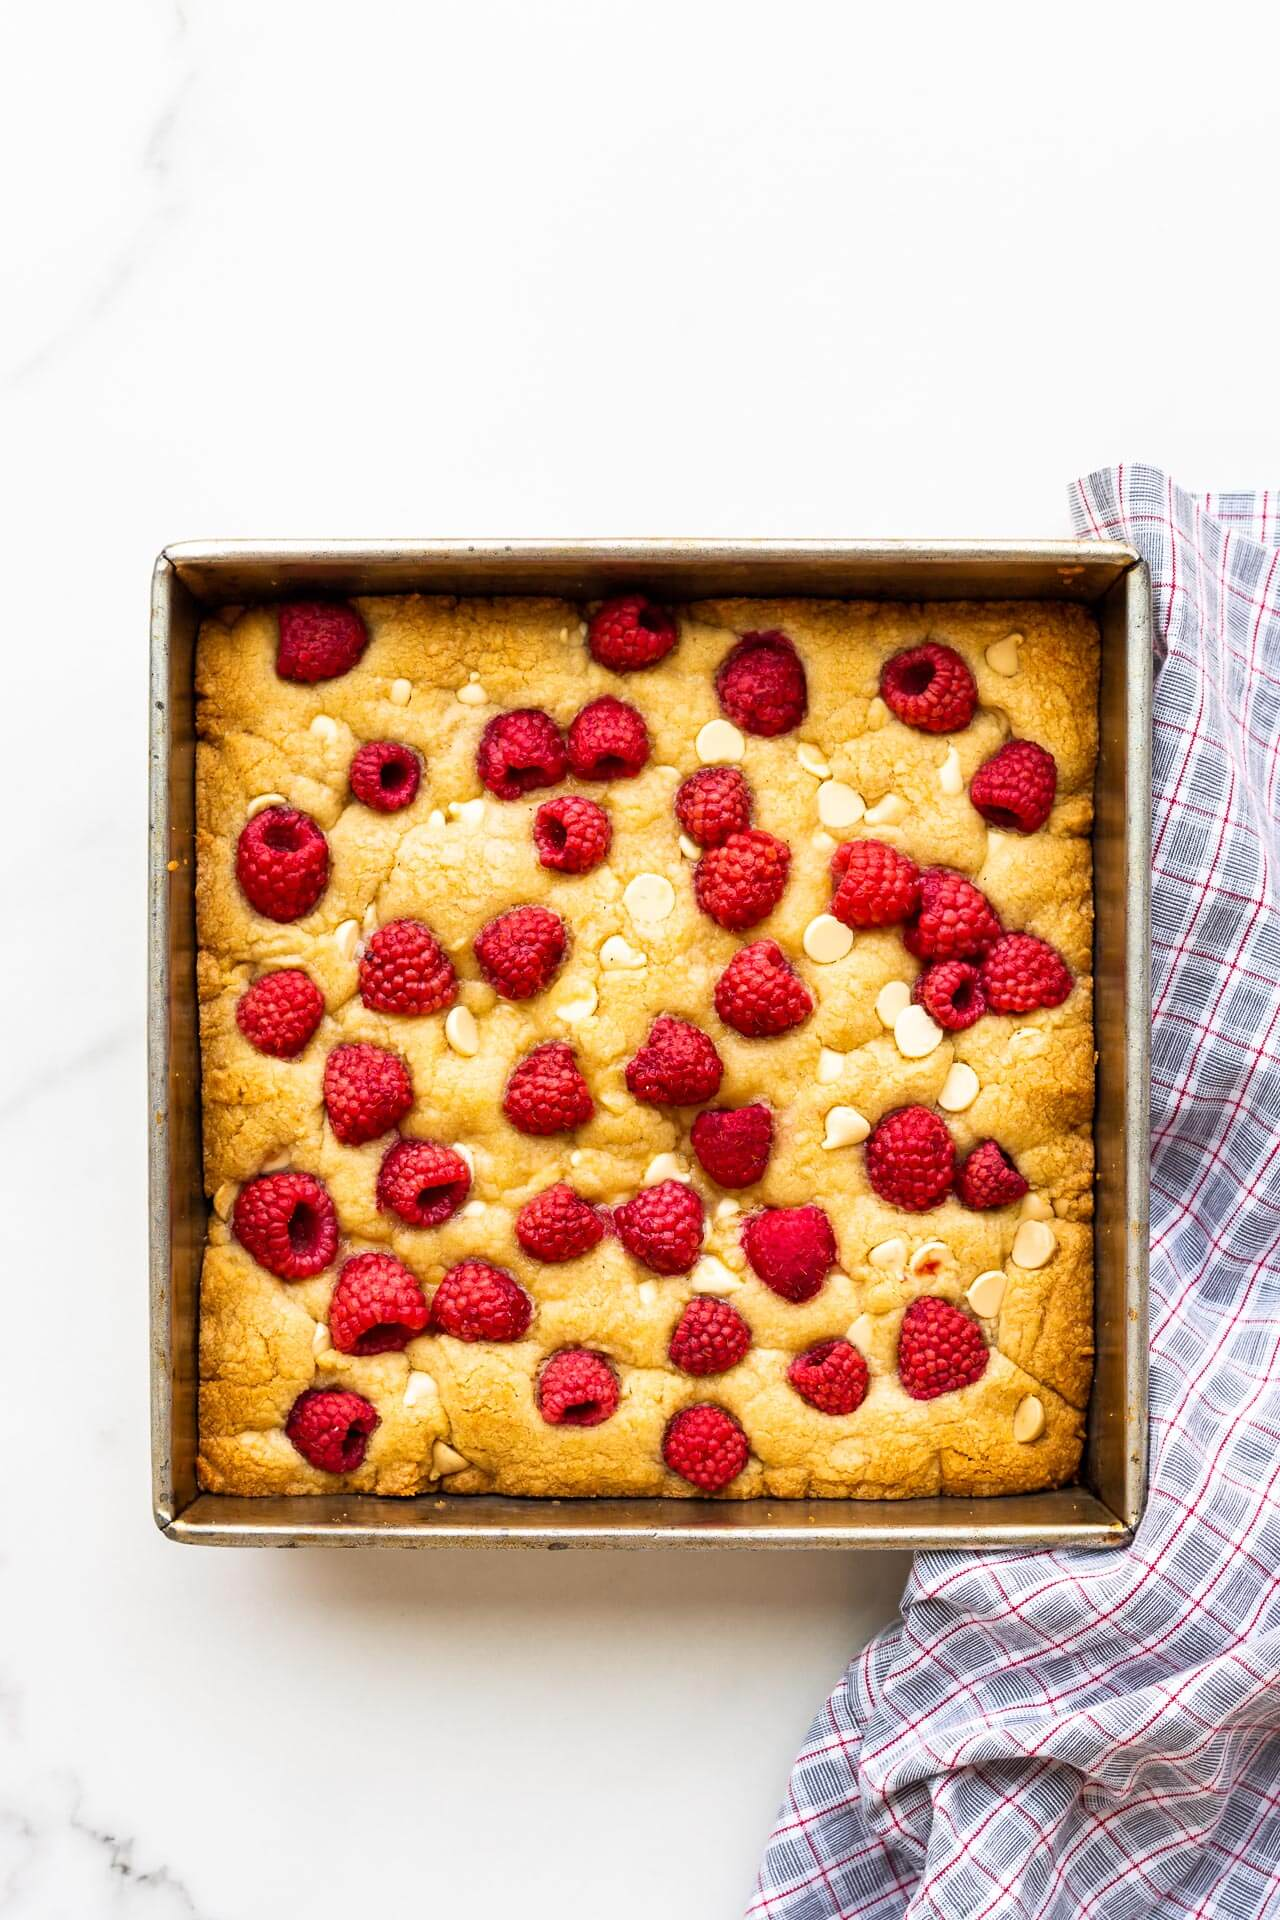 An 8x8 inch pan of baked blondies with raspberries and white chocolate chips on top